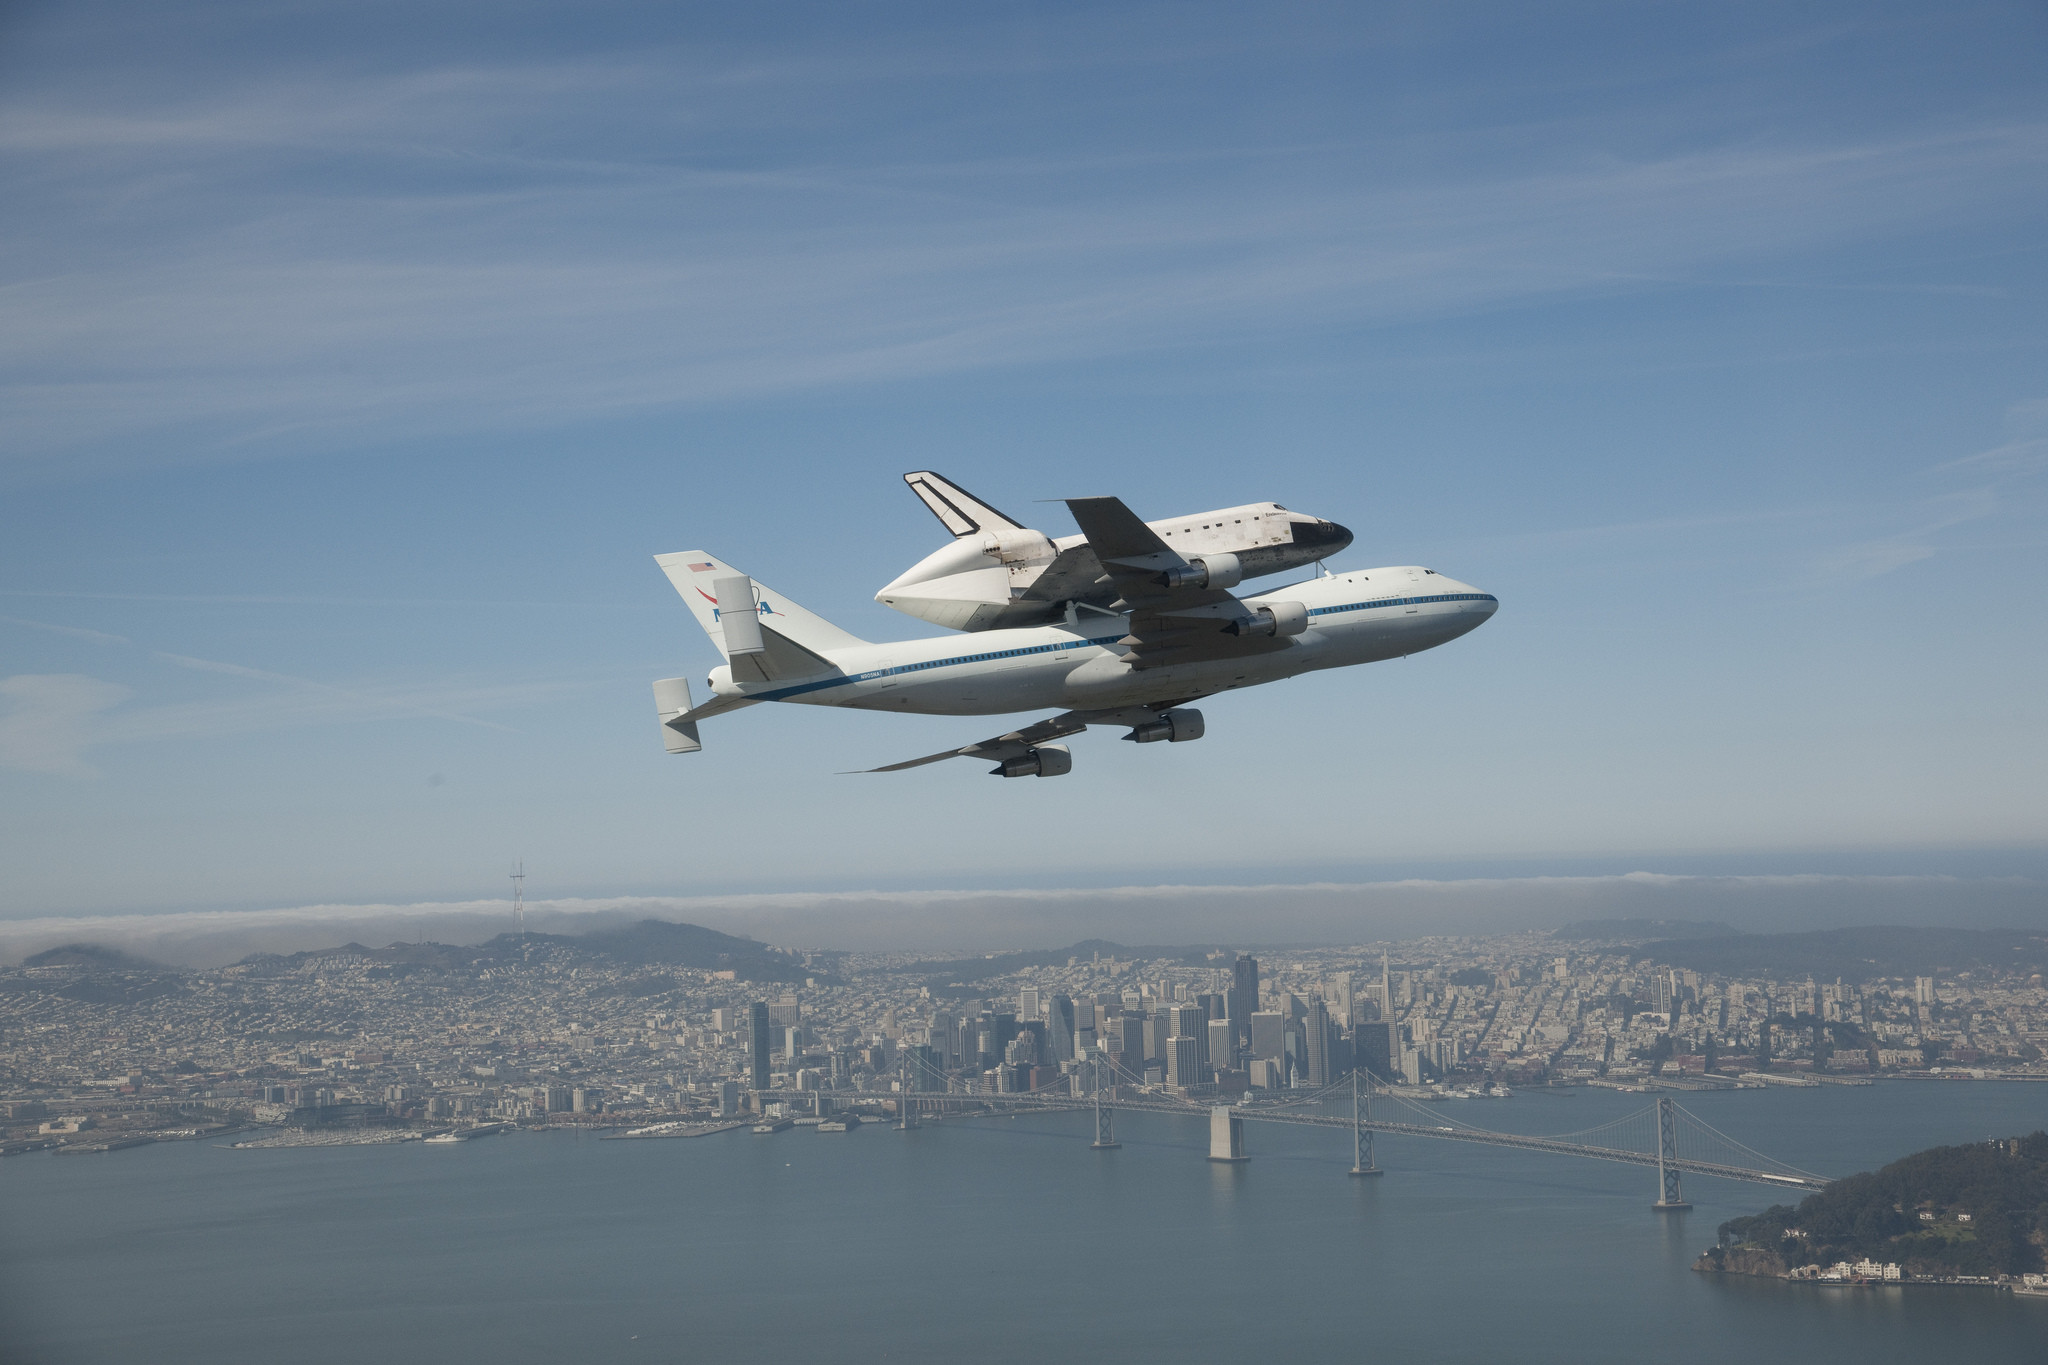 2048x1365 ... Space Shuttle Endeavour HD Wallpaper